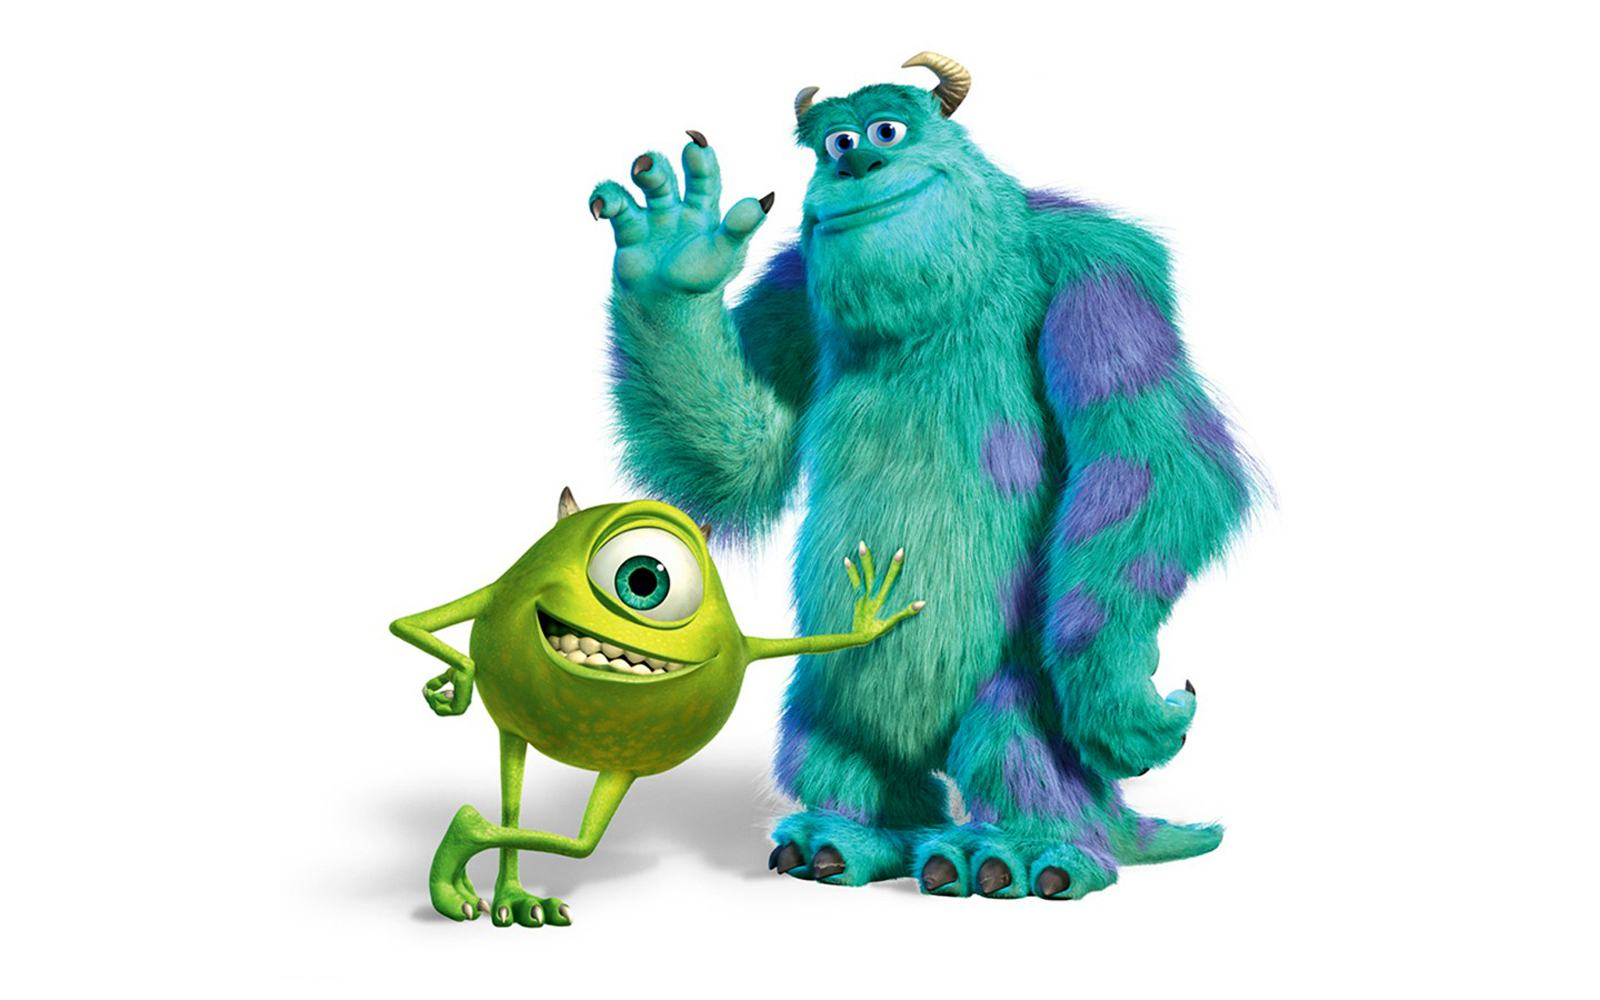 Monsters university animation movie wallpapers usu asl club 2015 full size voltagebd Image collections